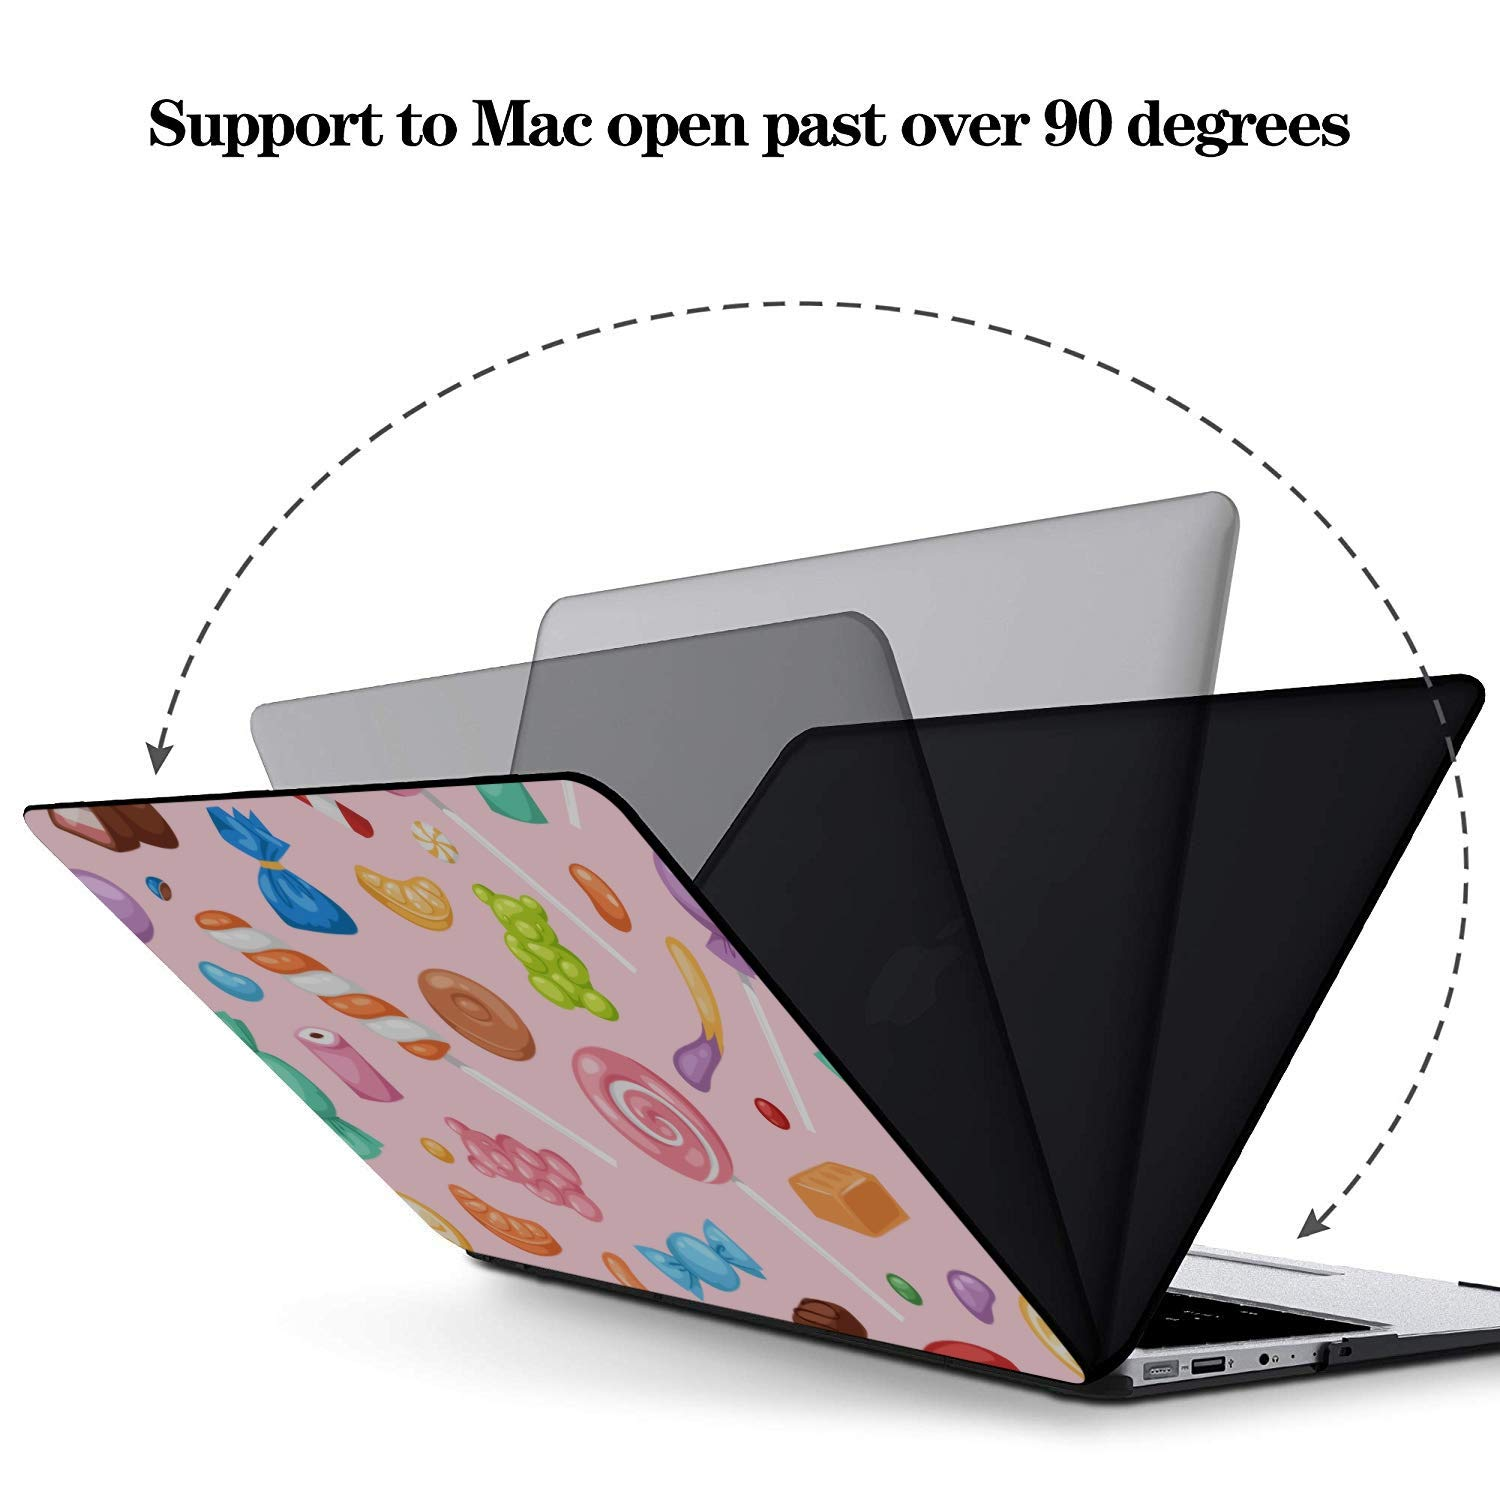 A1708 MacBook Pro Case Sweet Cartoon Dessert Chocolate Roll Plastic Hard Shell Compatible Mac Air 11 Pro 13 15 Laptop Cover Case Protection for MacBook 2016-2019 Version